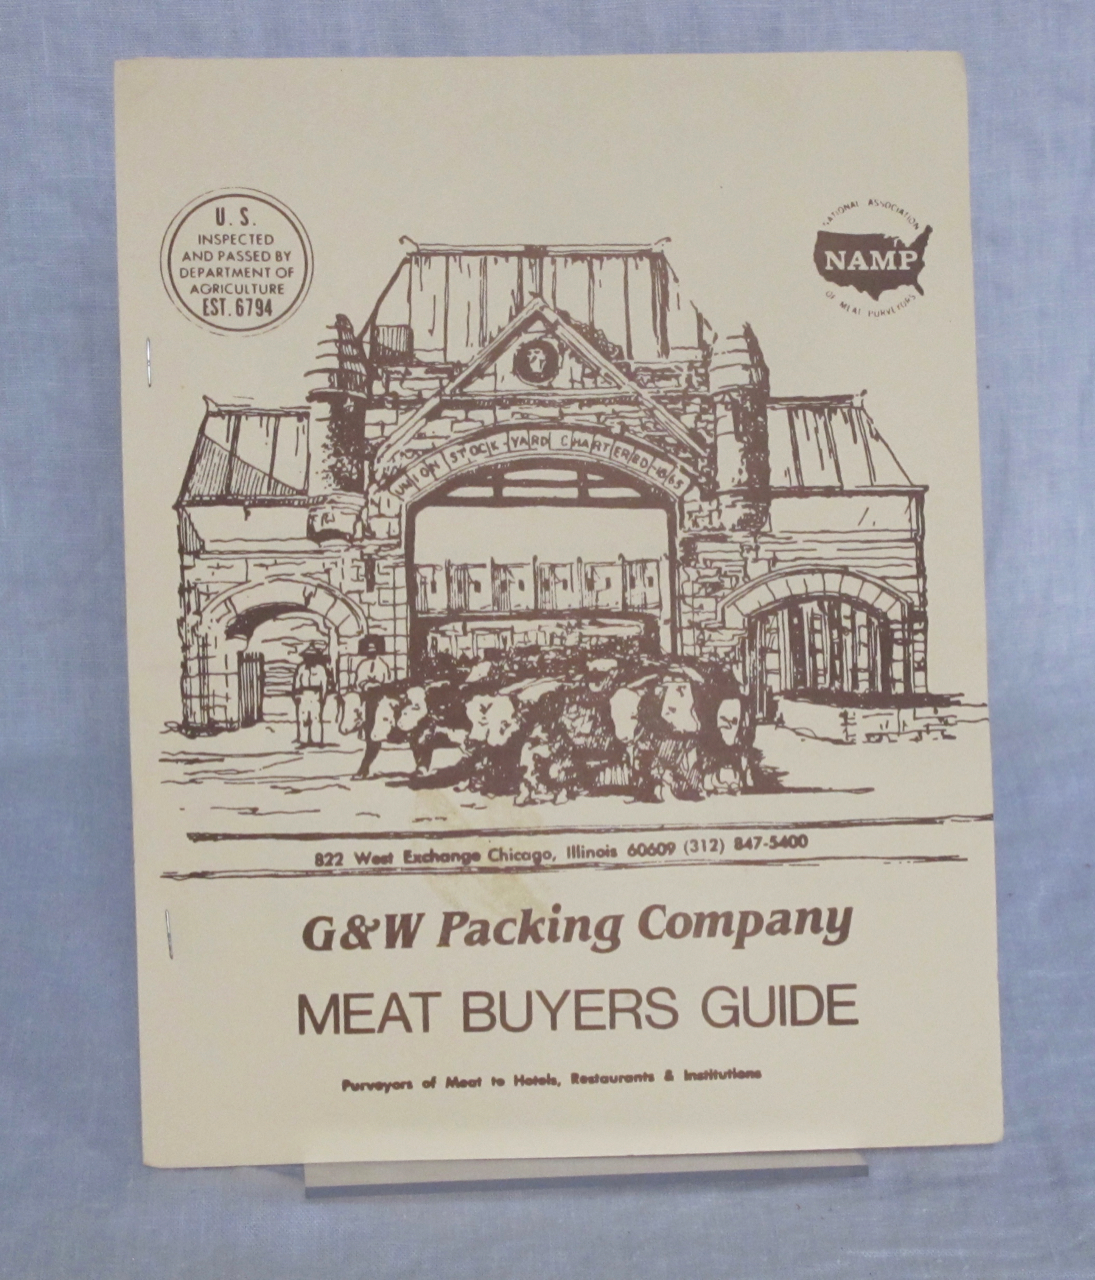 G & W Packing Company Meat Buyers Guide. G, W Packing Company.